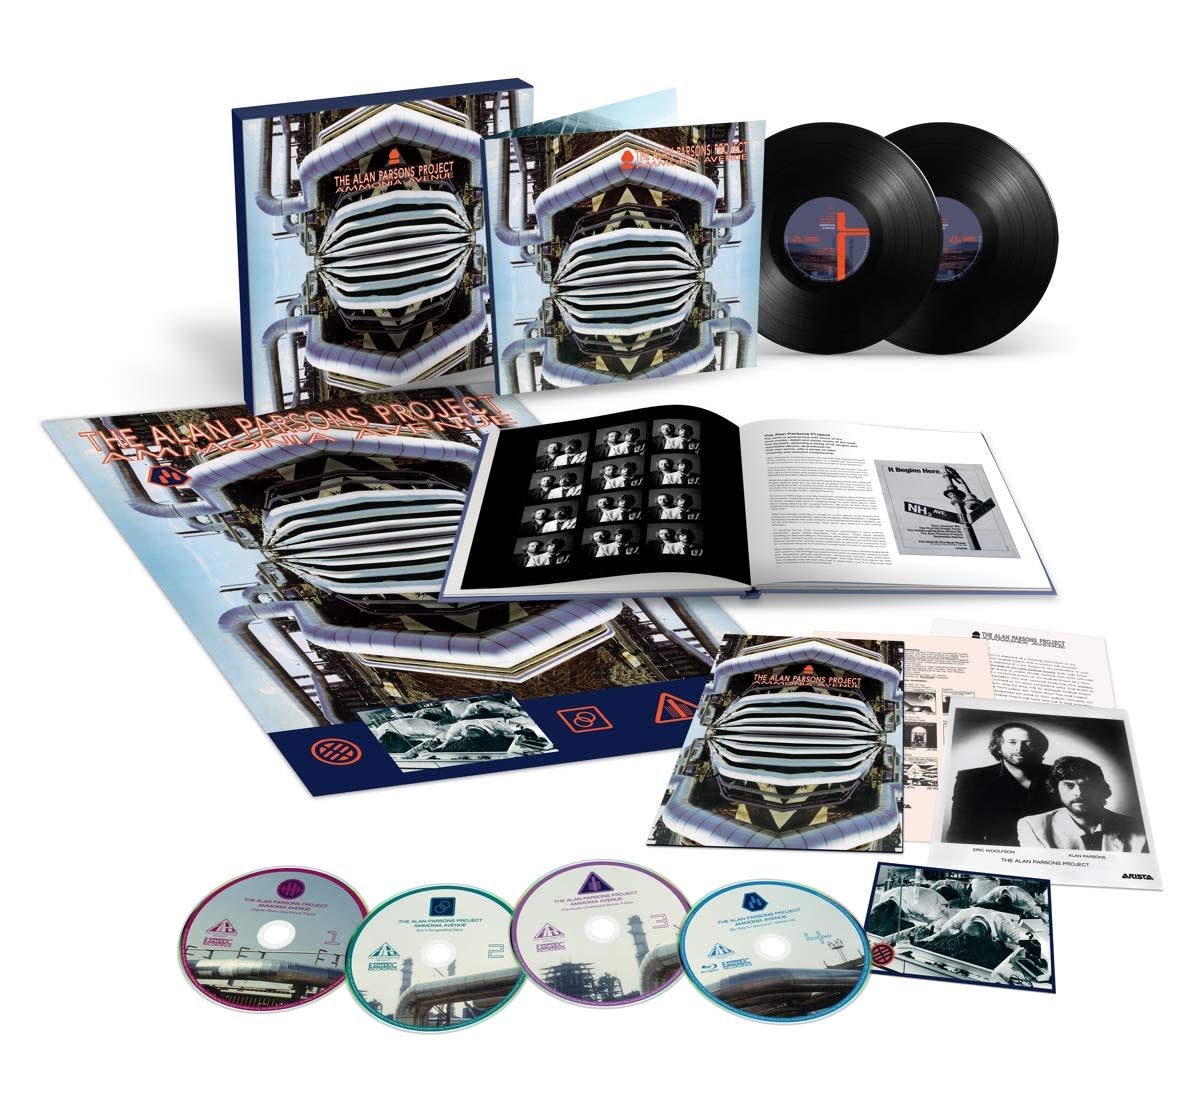 Ammonia Avenue Limited Deluxe Edition box set (2-LP, 3-CD, Blu-ray and bonus material)